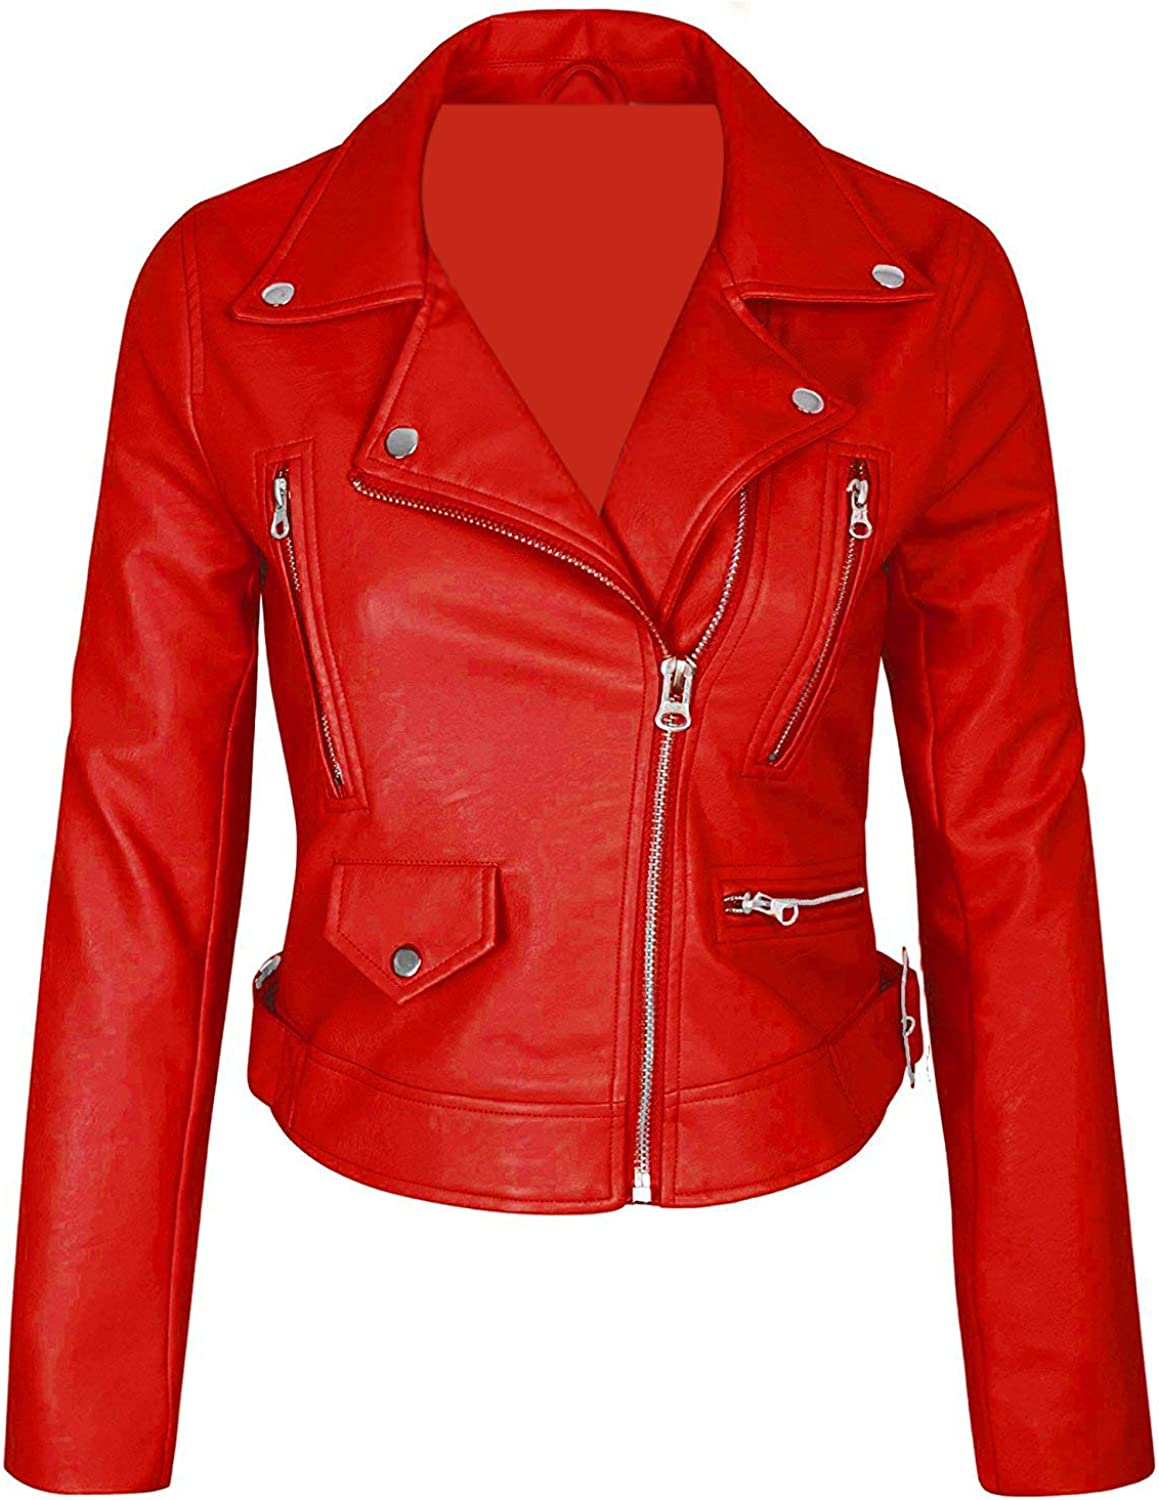 Ribi's Womens Red Pu Leather Jacket - Faux Leather Jackets for Women